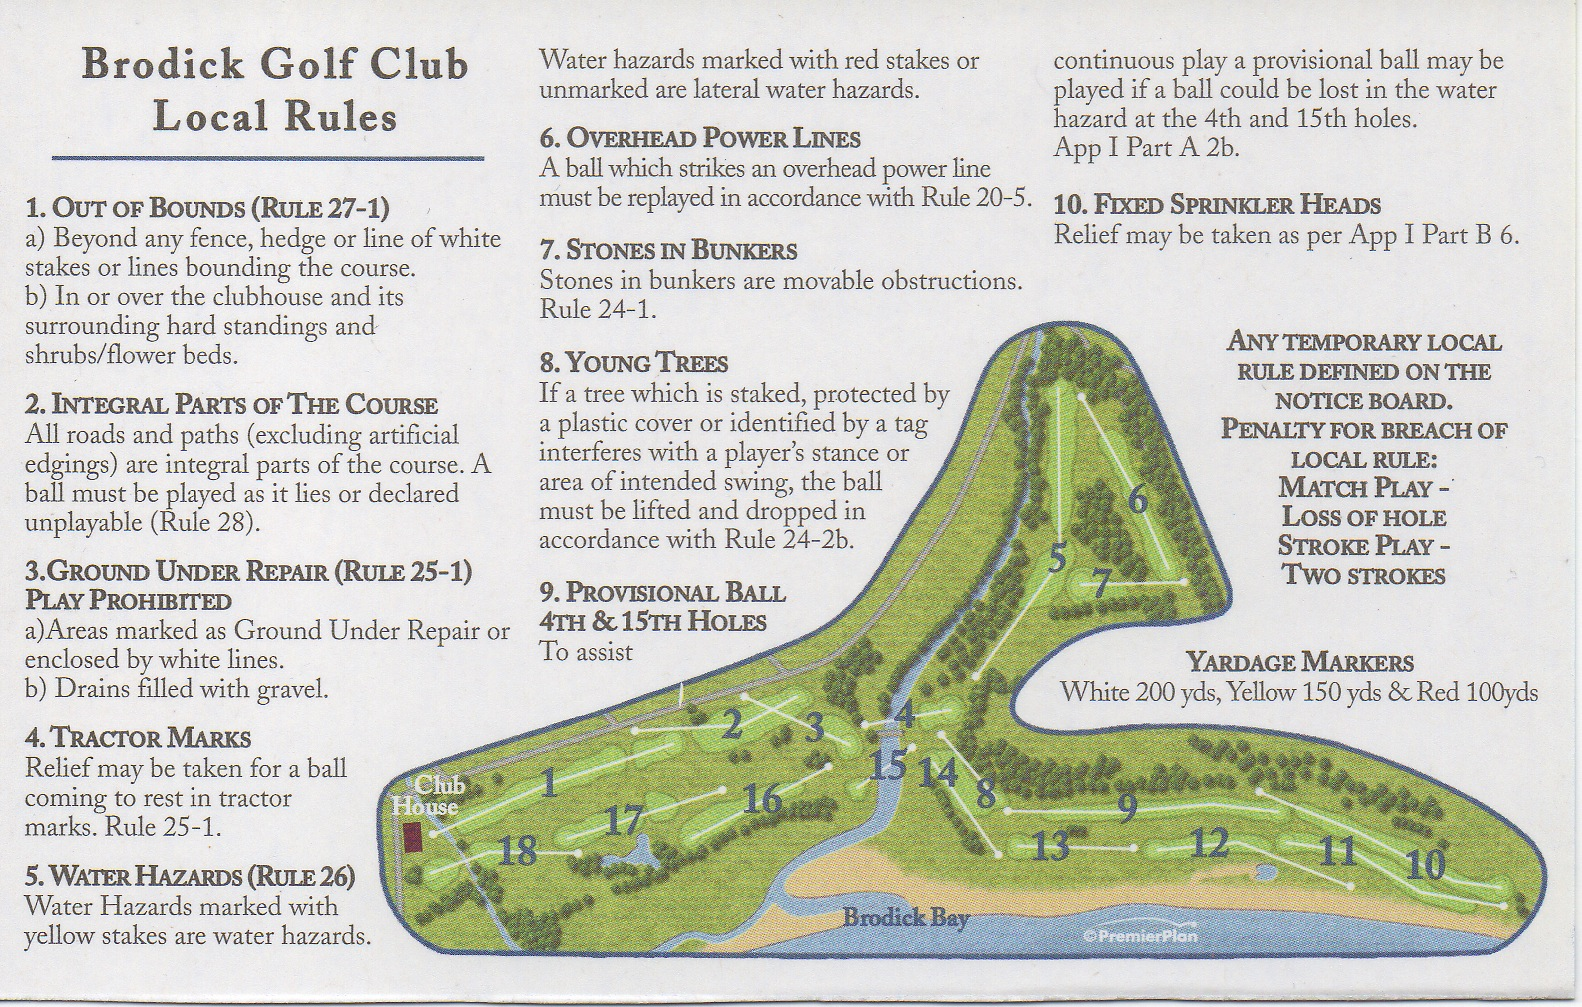 Local Rules and Course Layout